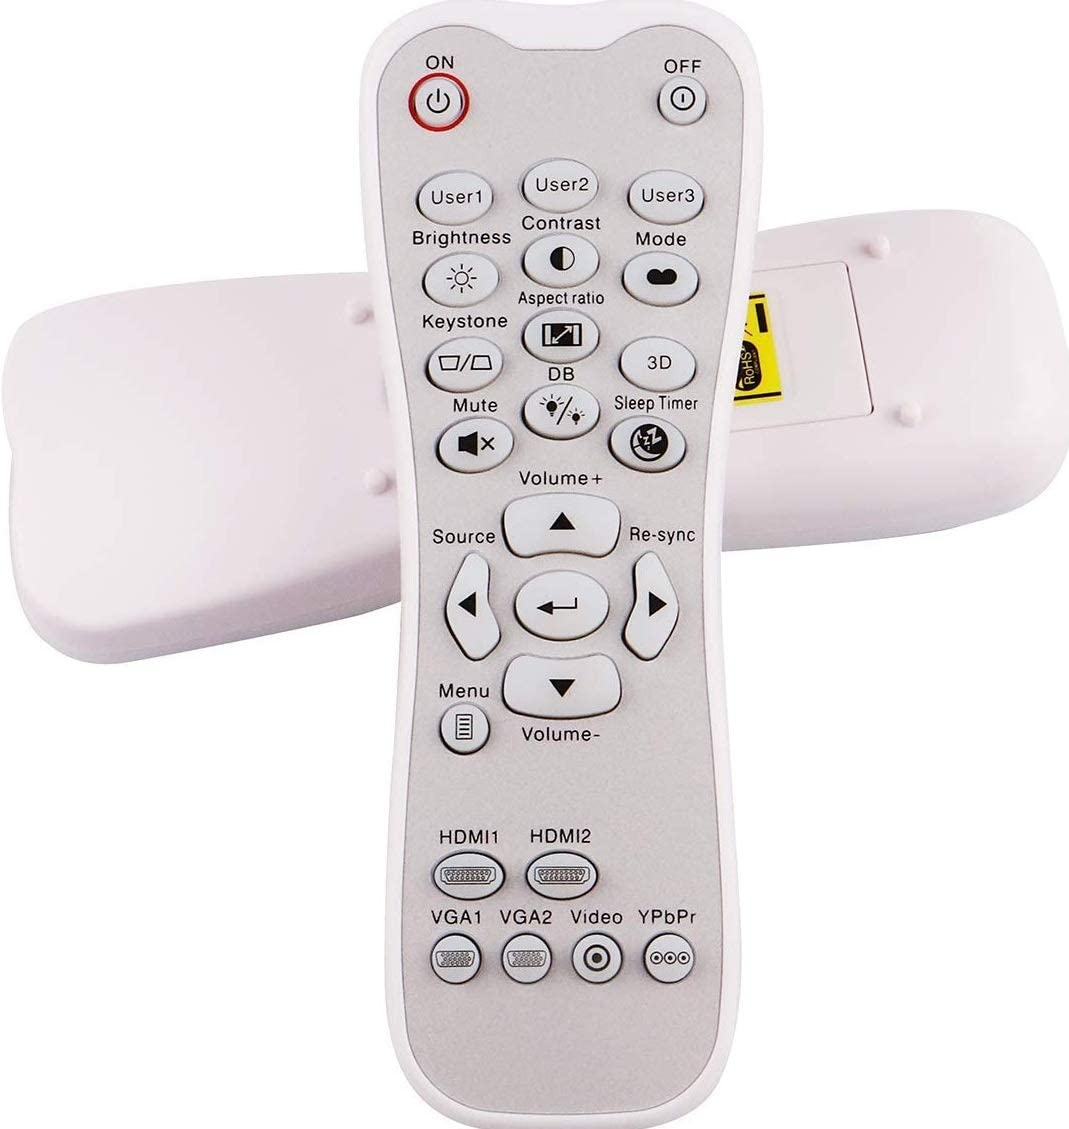 World of Remote Controls General Universal Compatible Replacement Projector Remote Control Fit for Optoma Projector HD26 GT1080 GT1070X HD141X DH1008 HD37 HDF536 HDF537ST HD200D EH200ST 18 months Warr